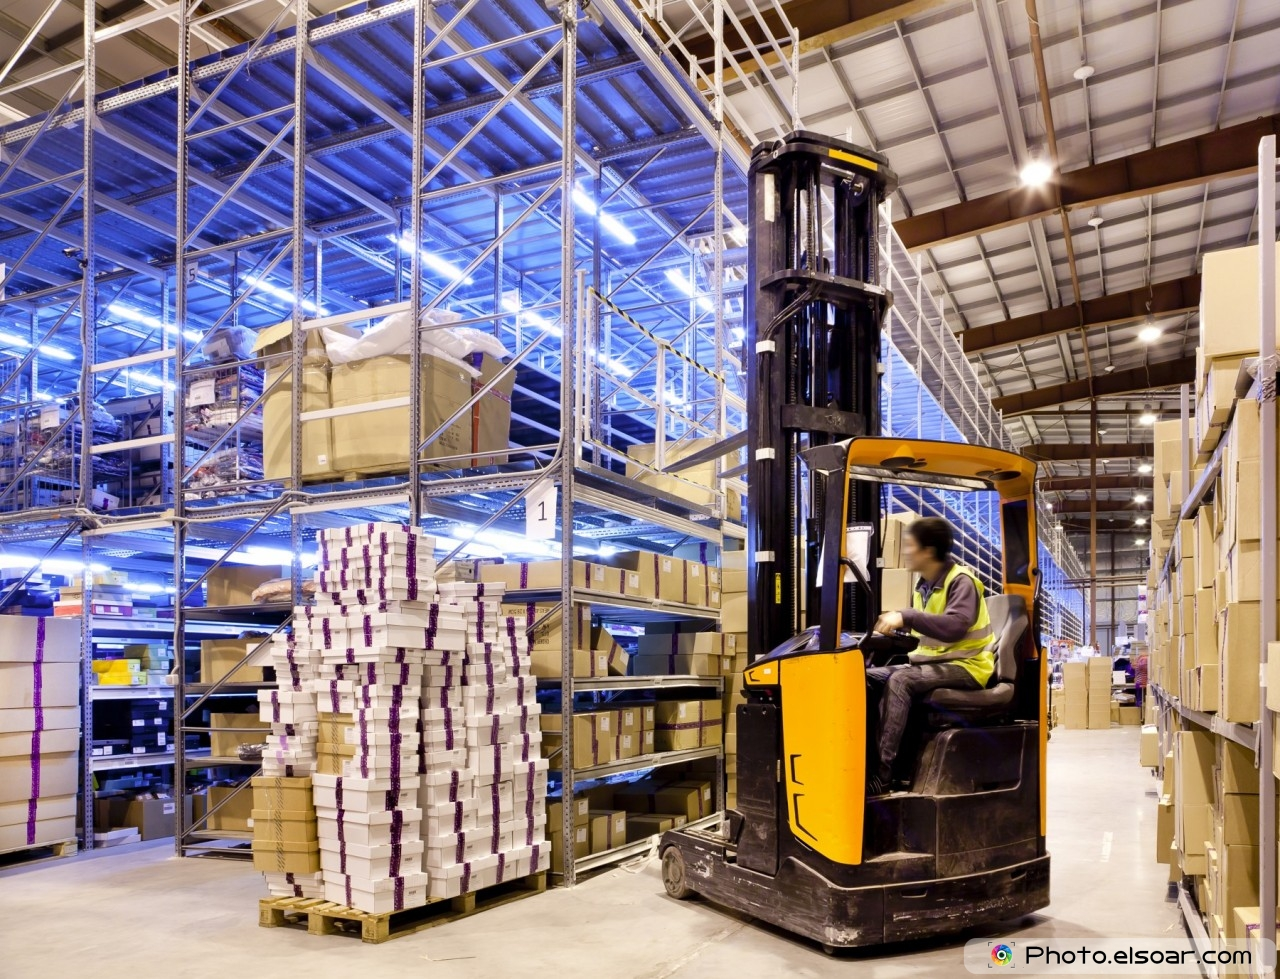 Worker in the motion on forklift